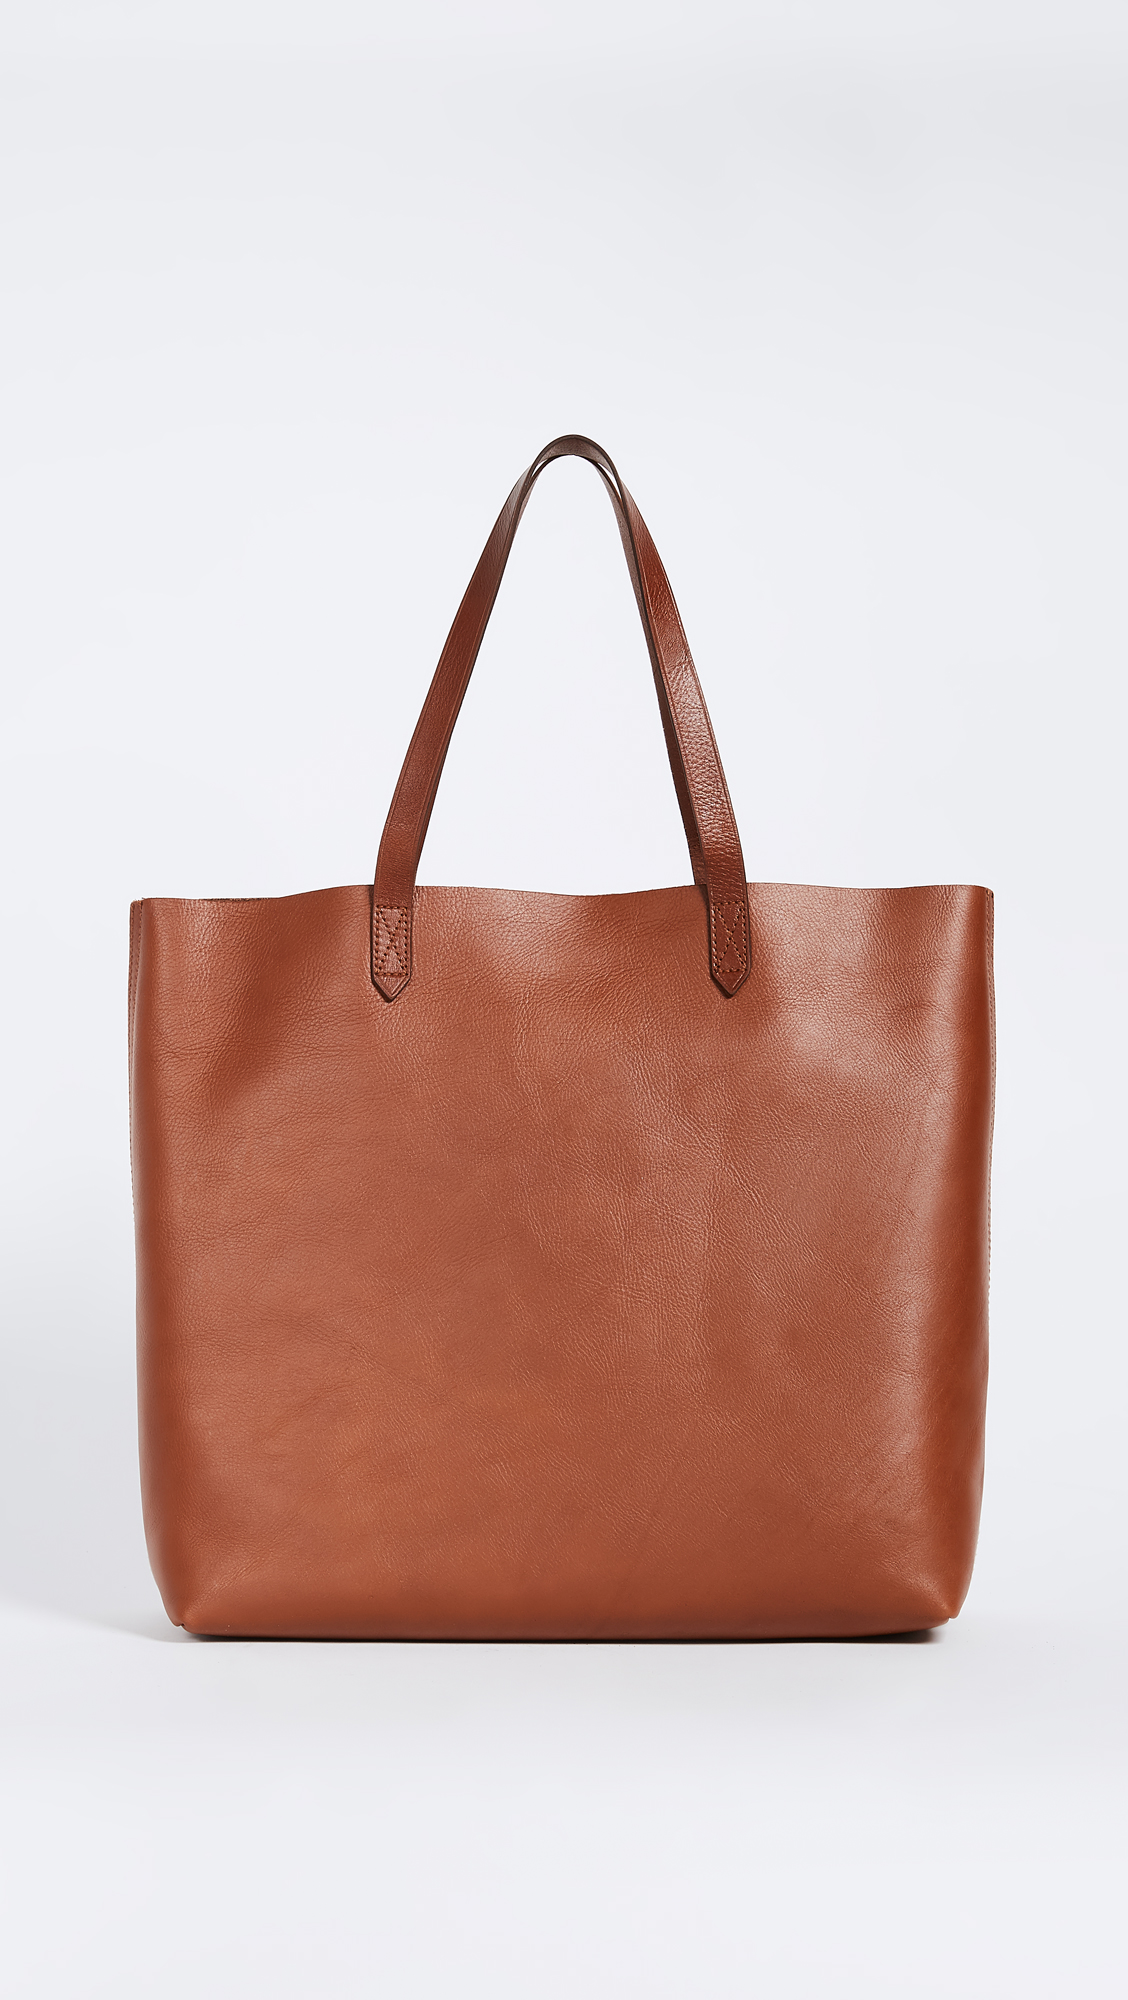 Ecco bags: elegant simplicity and Scandinavian charm